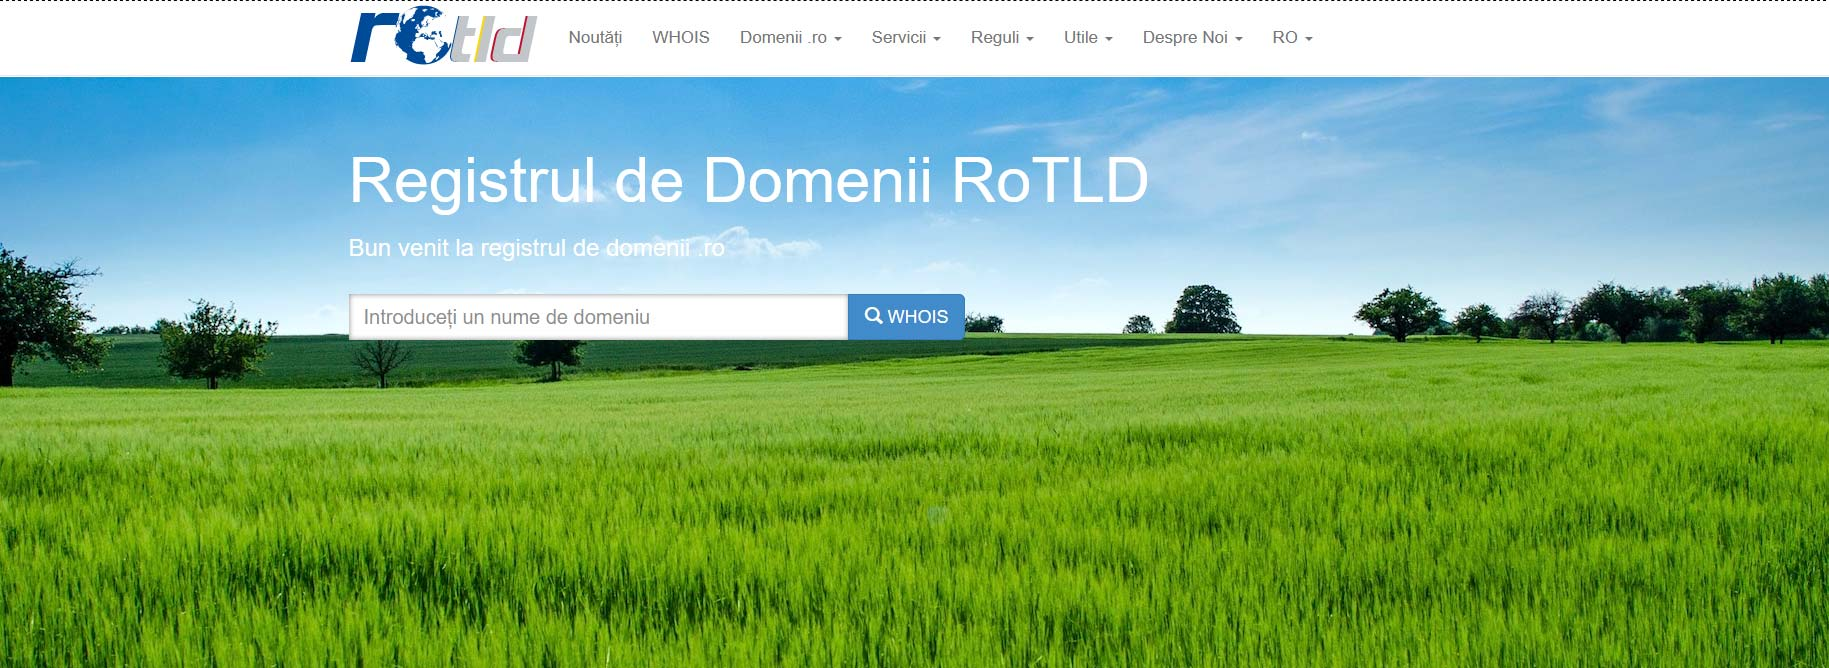 rotld administrare on line domeniu